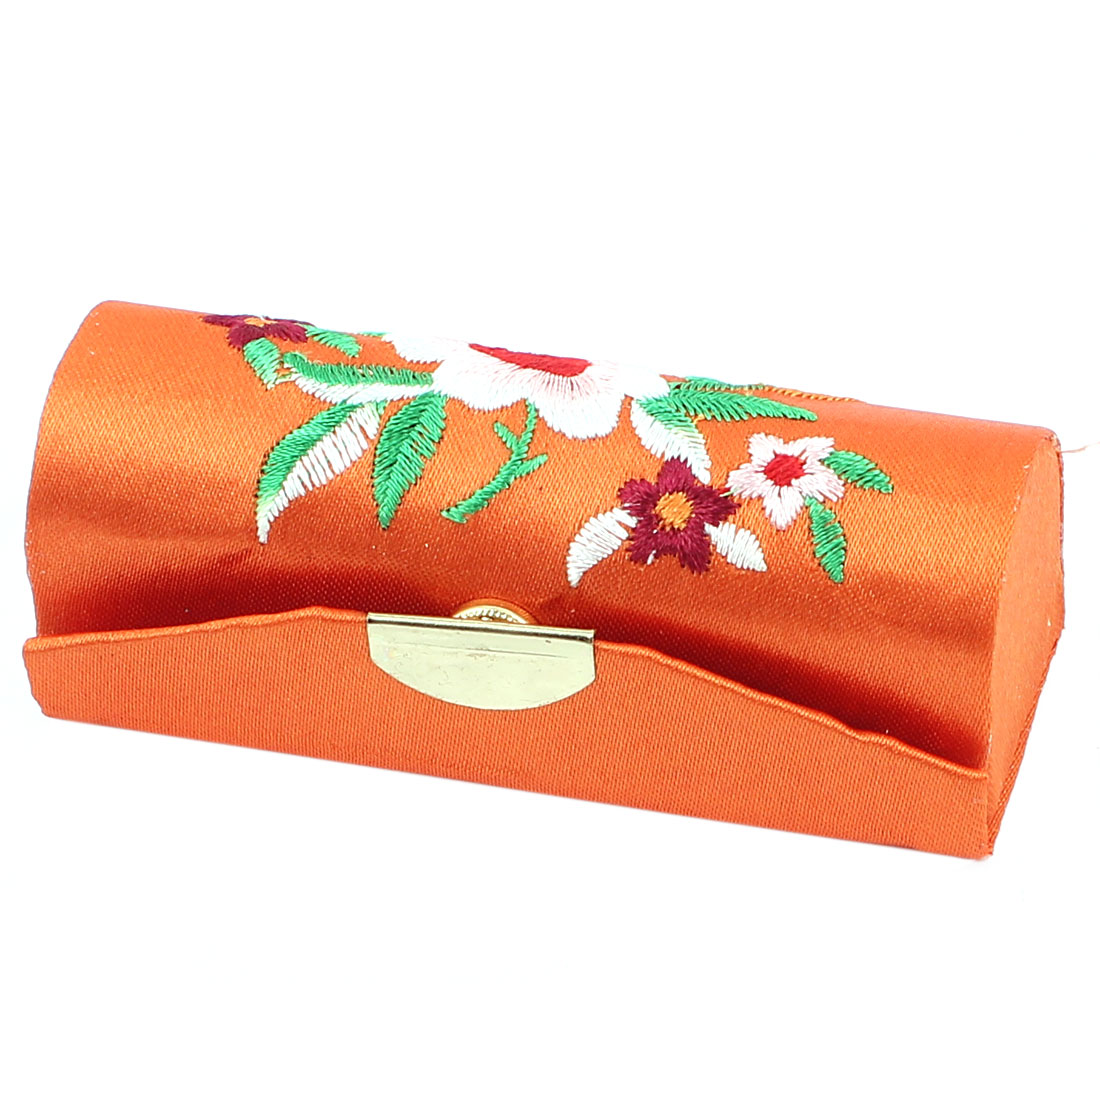 Chinese Style Floral Embroidered Lipstick Lip Chap Stick Case Holder Box Orange